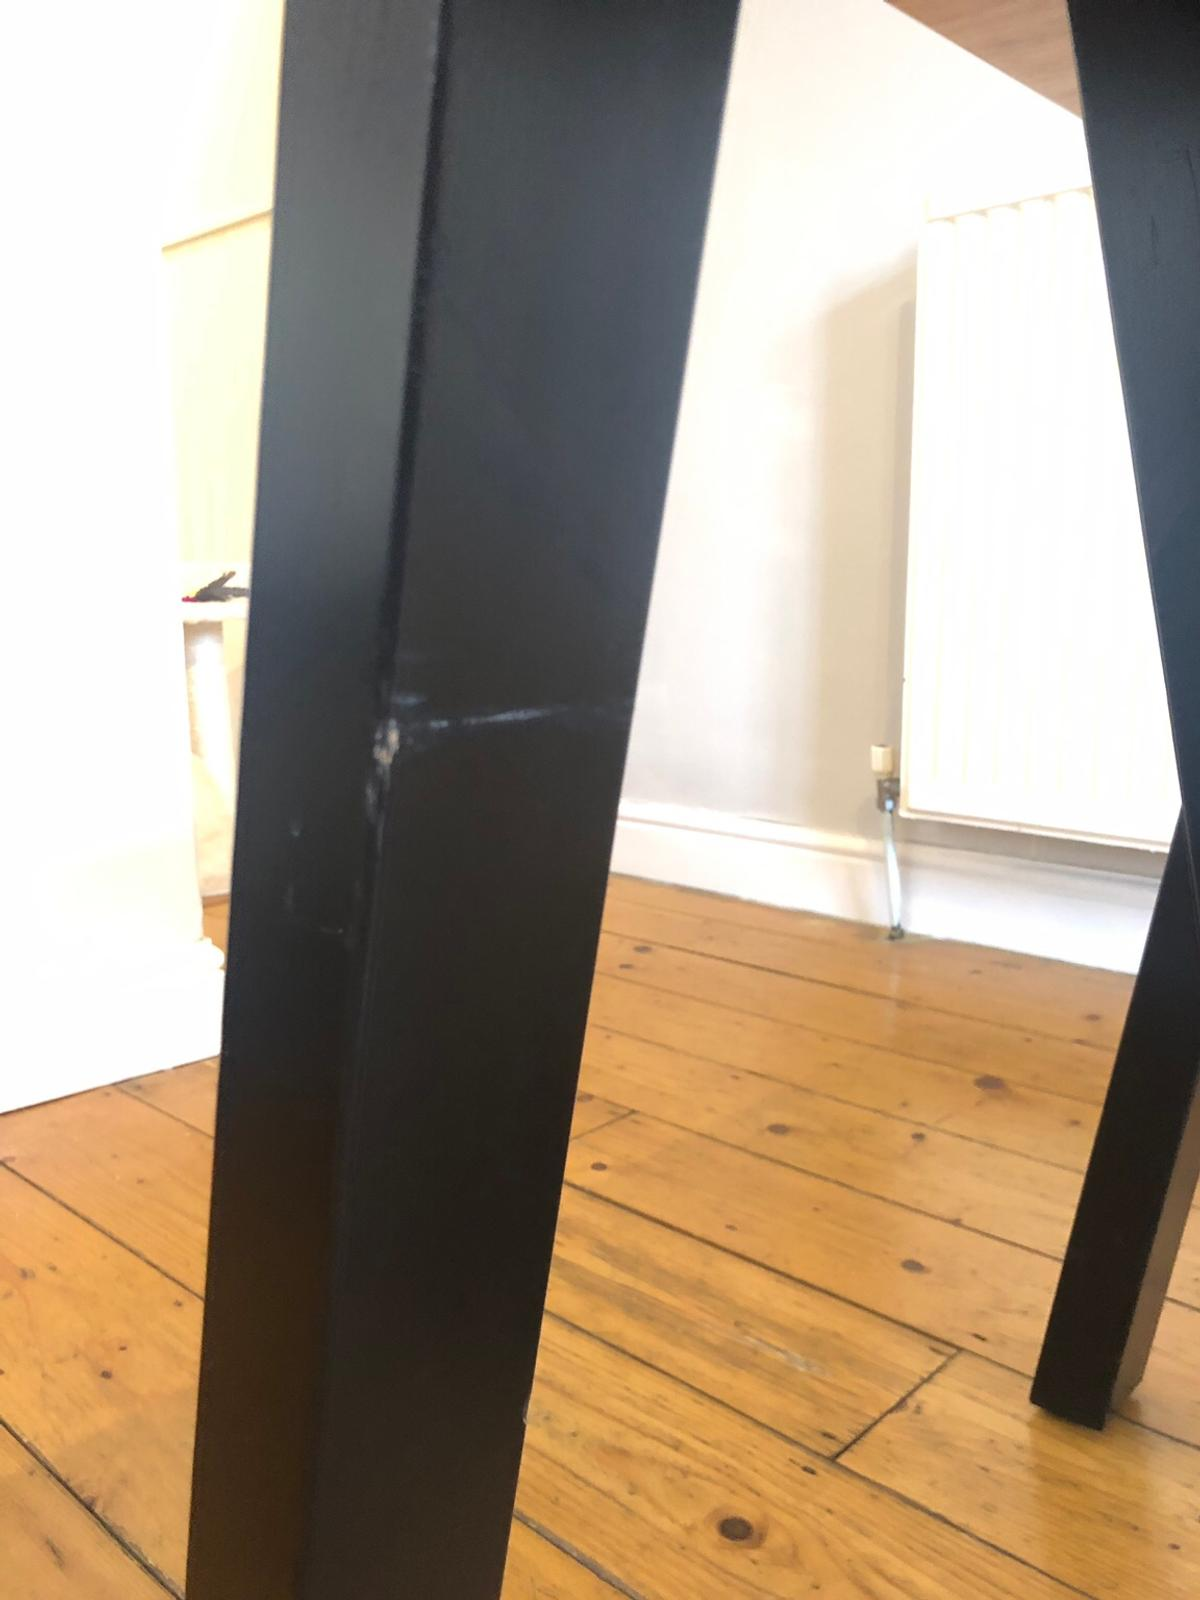 Picture of: Dining Table Black Bamboo 6 Seater In Sw18 Wandsworth For 80 00 For Sale Shpock